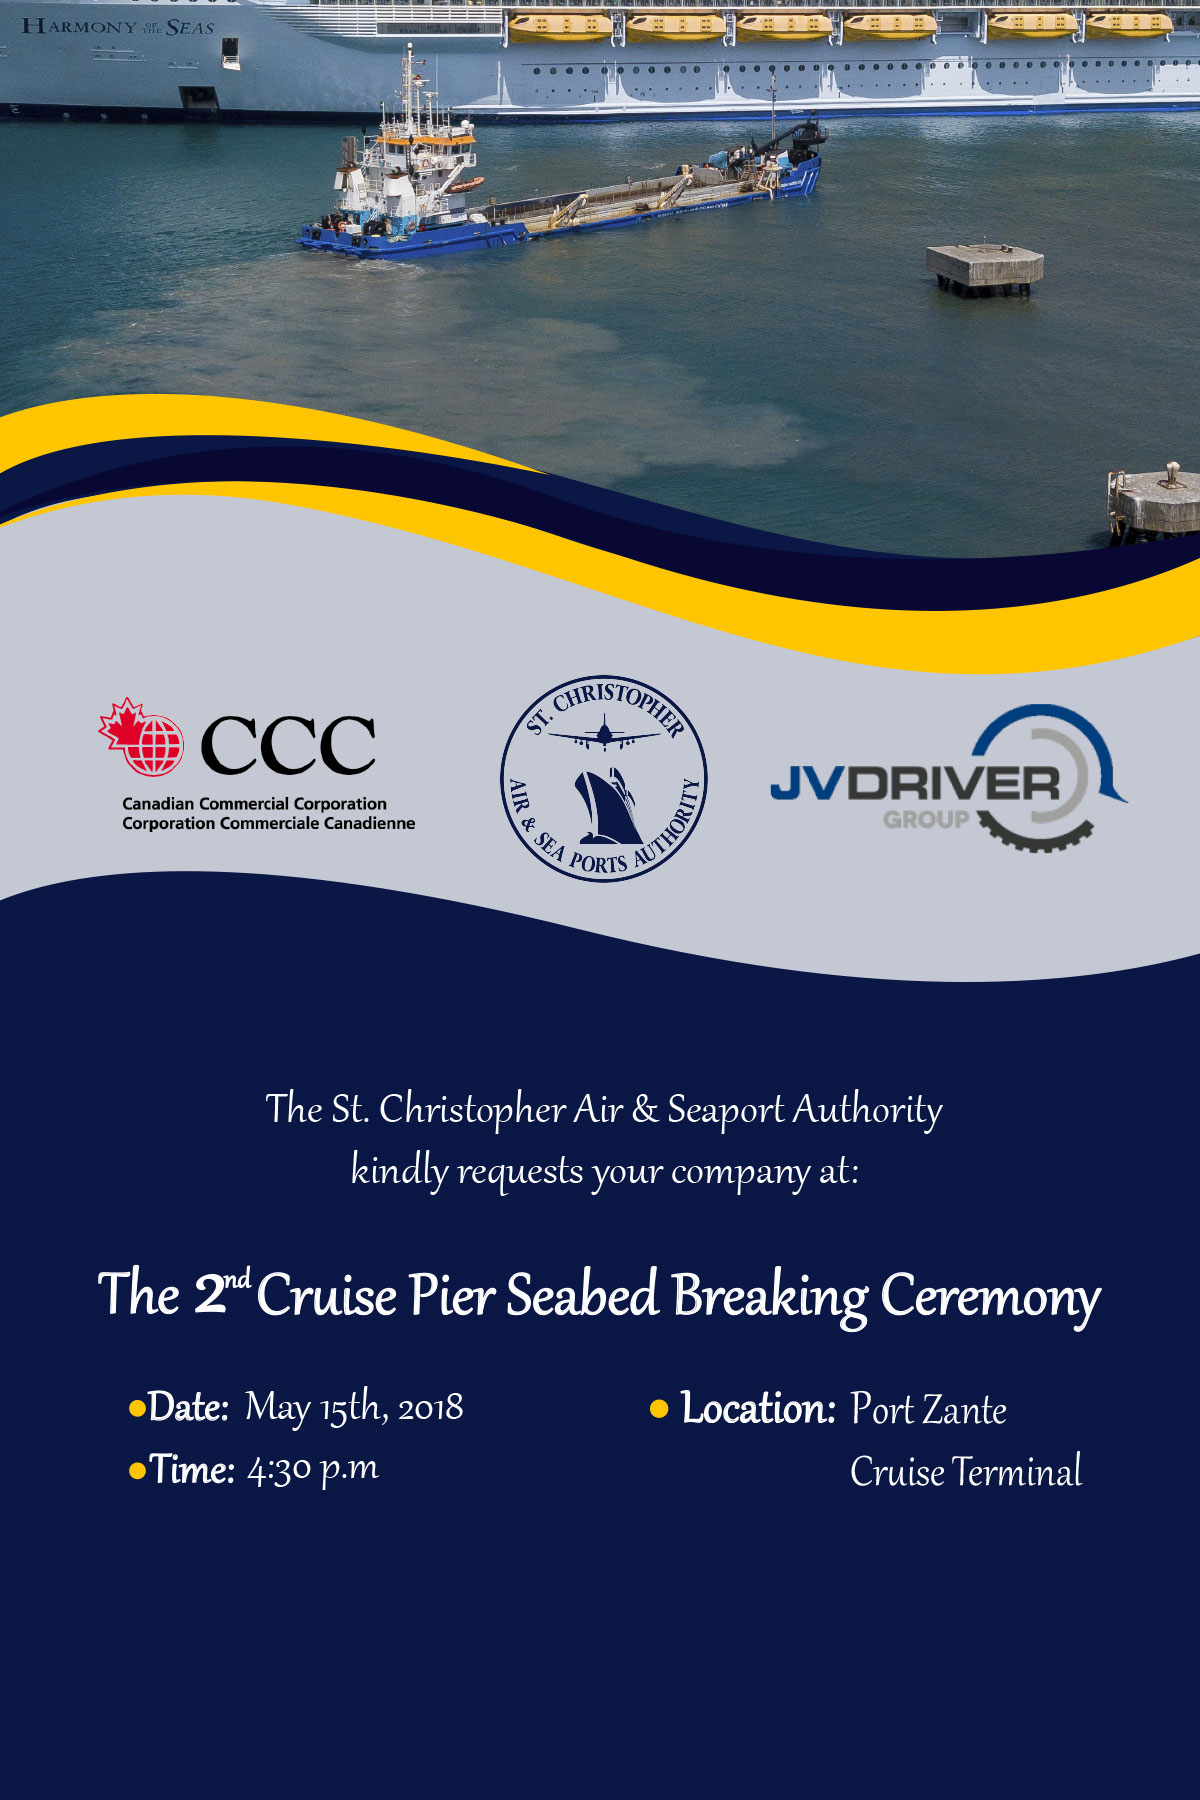 The 2nd Cruise Pier Seabed Breaking Ceremony